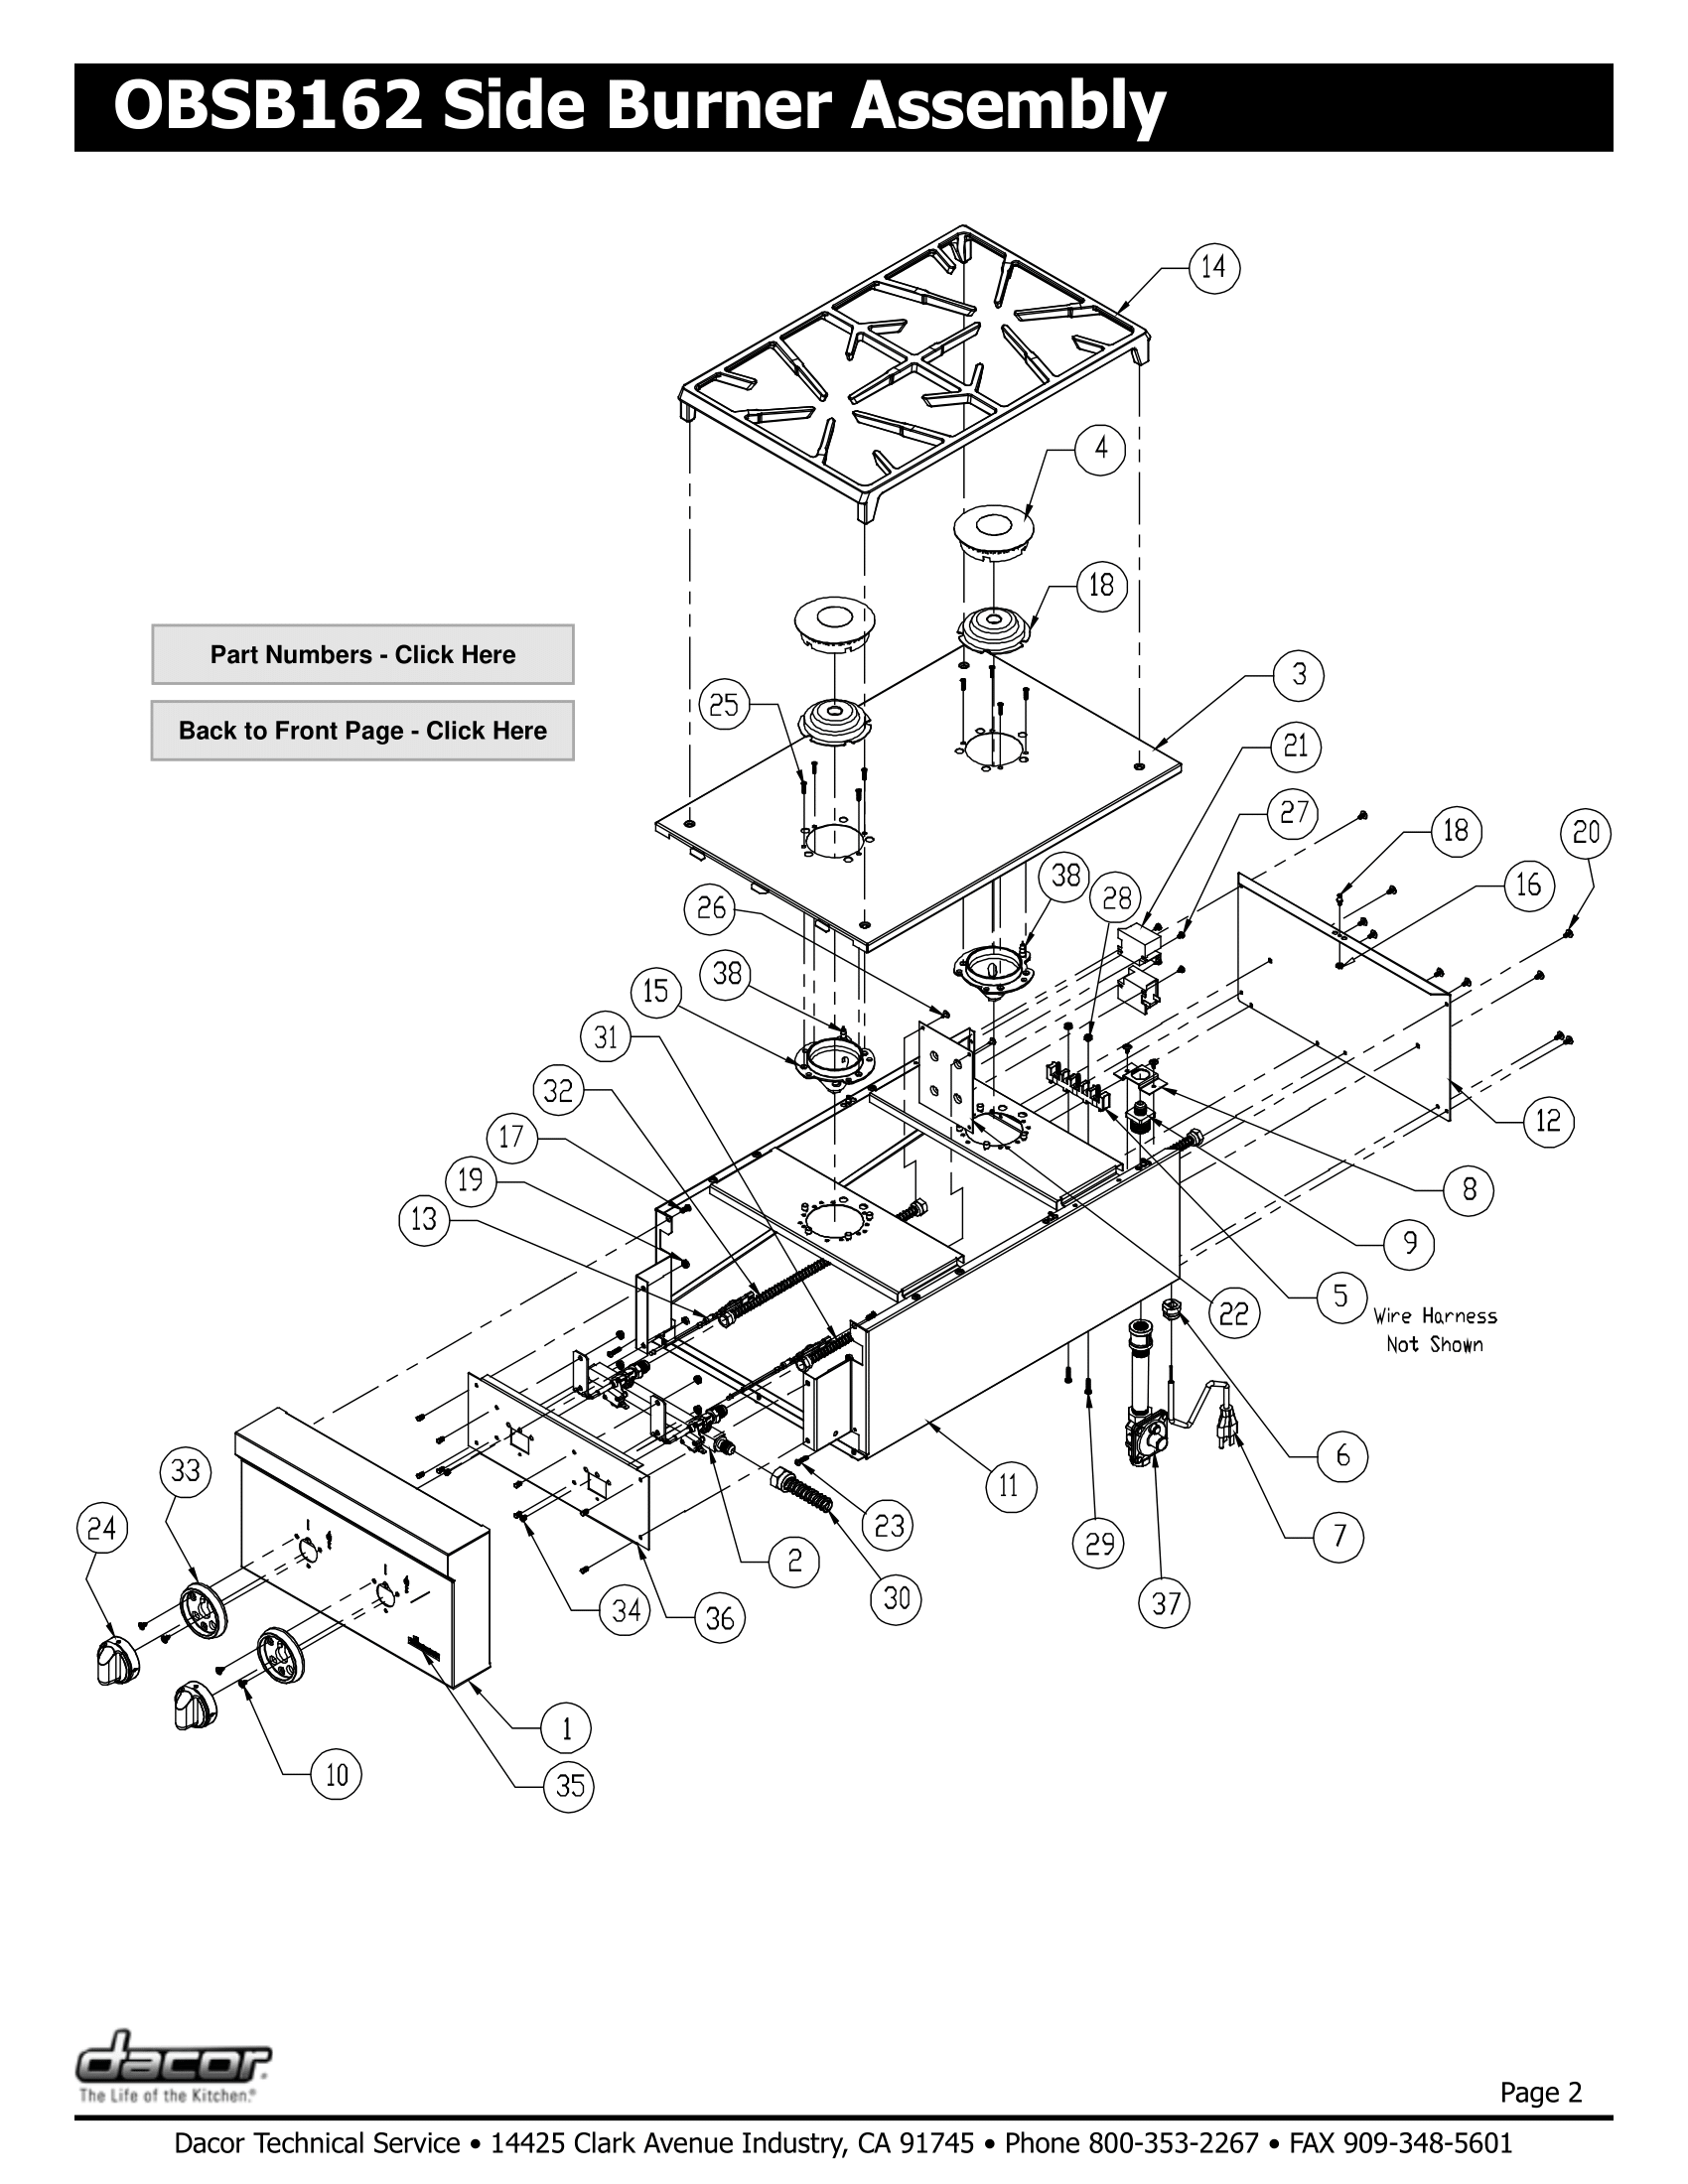 Dacor OBSB162 Assembly Schematic